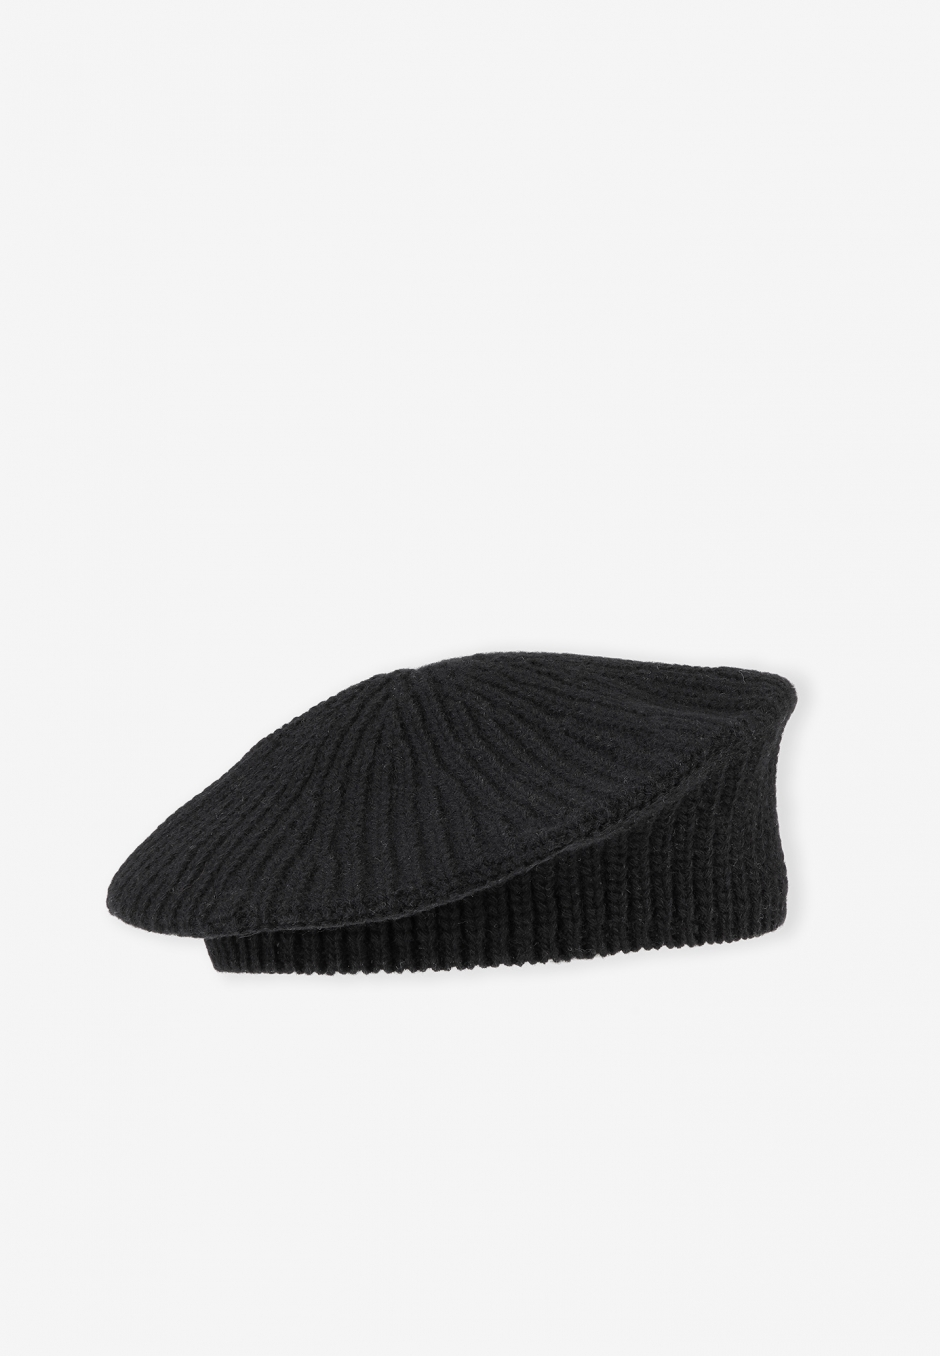 Ganni Recycled Wool Beret